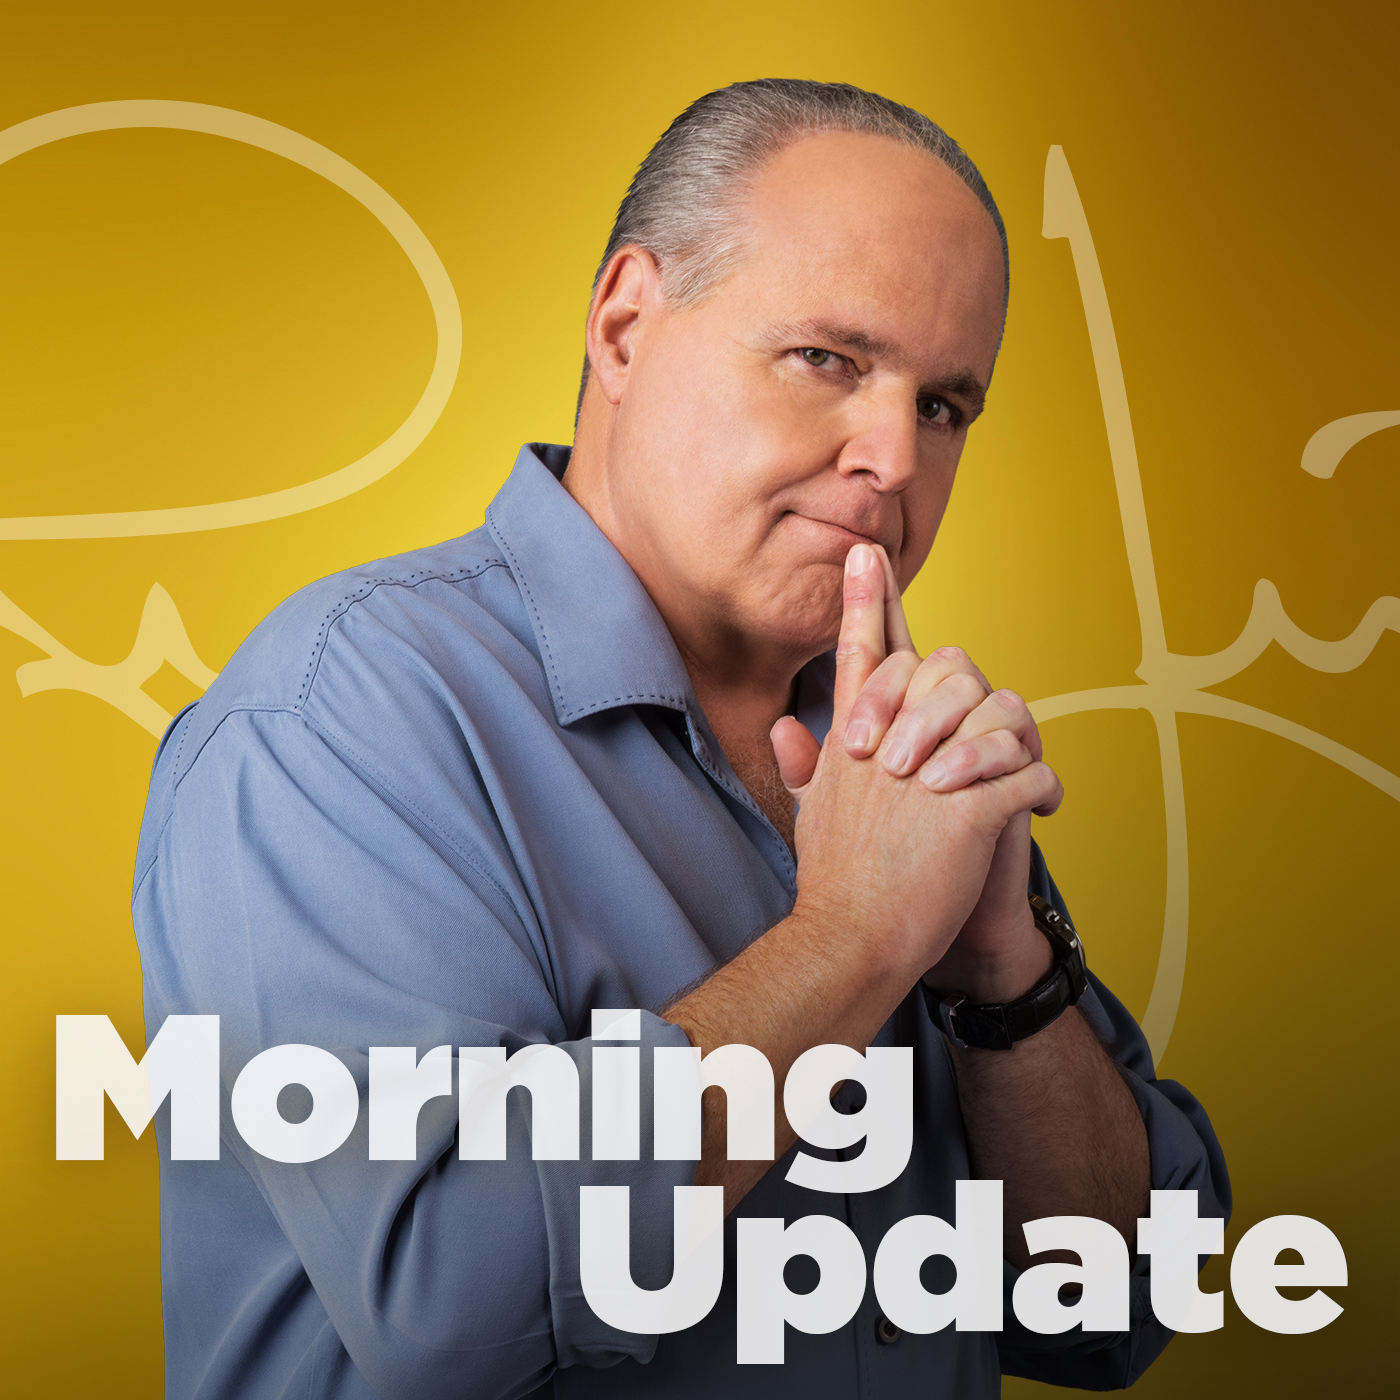 Rush Limbaugh Jan 09, 2020